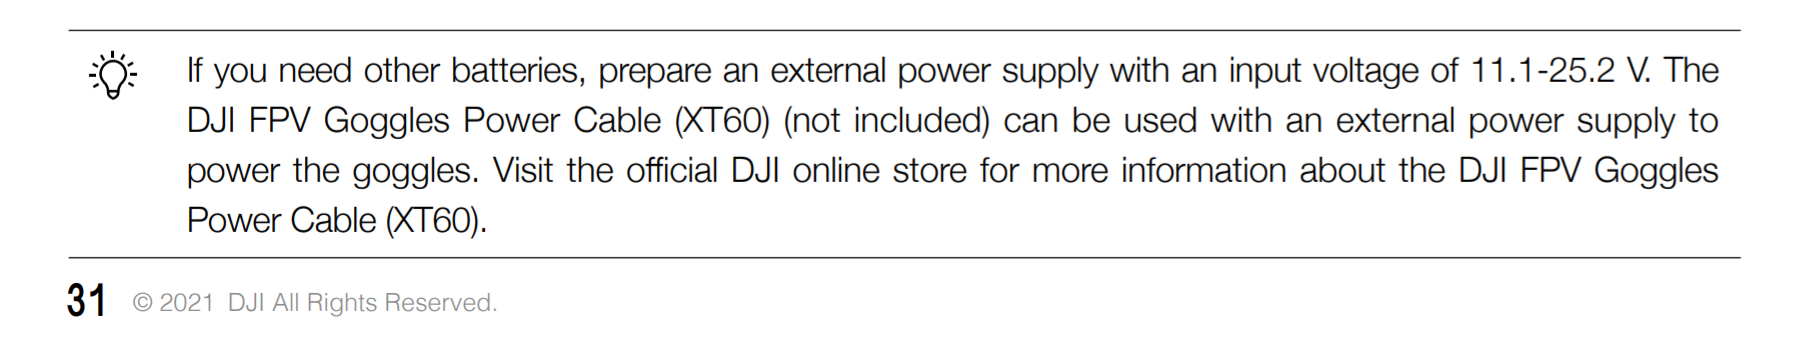 DjiPower210326a.PNG